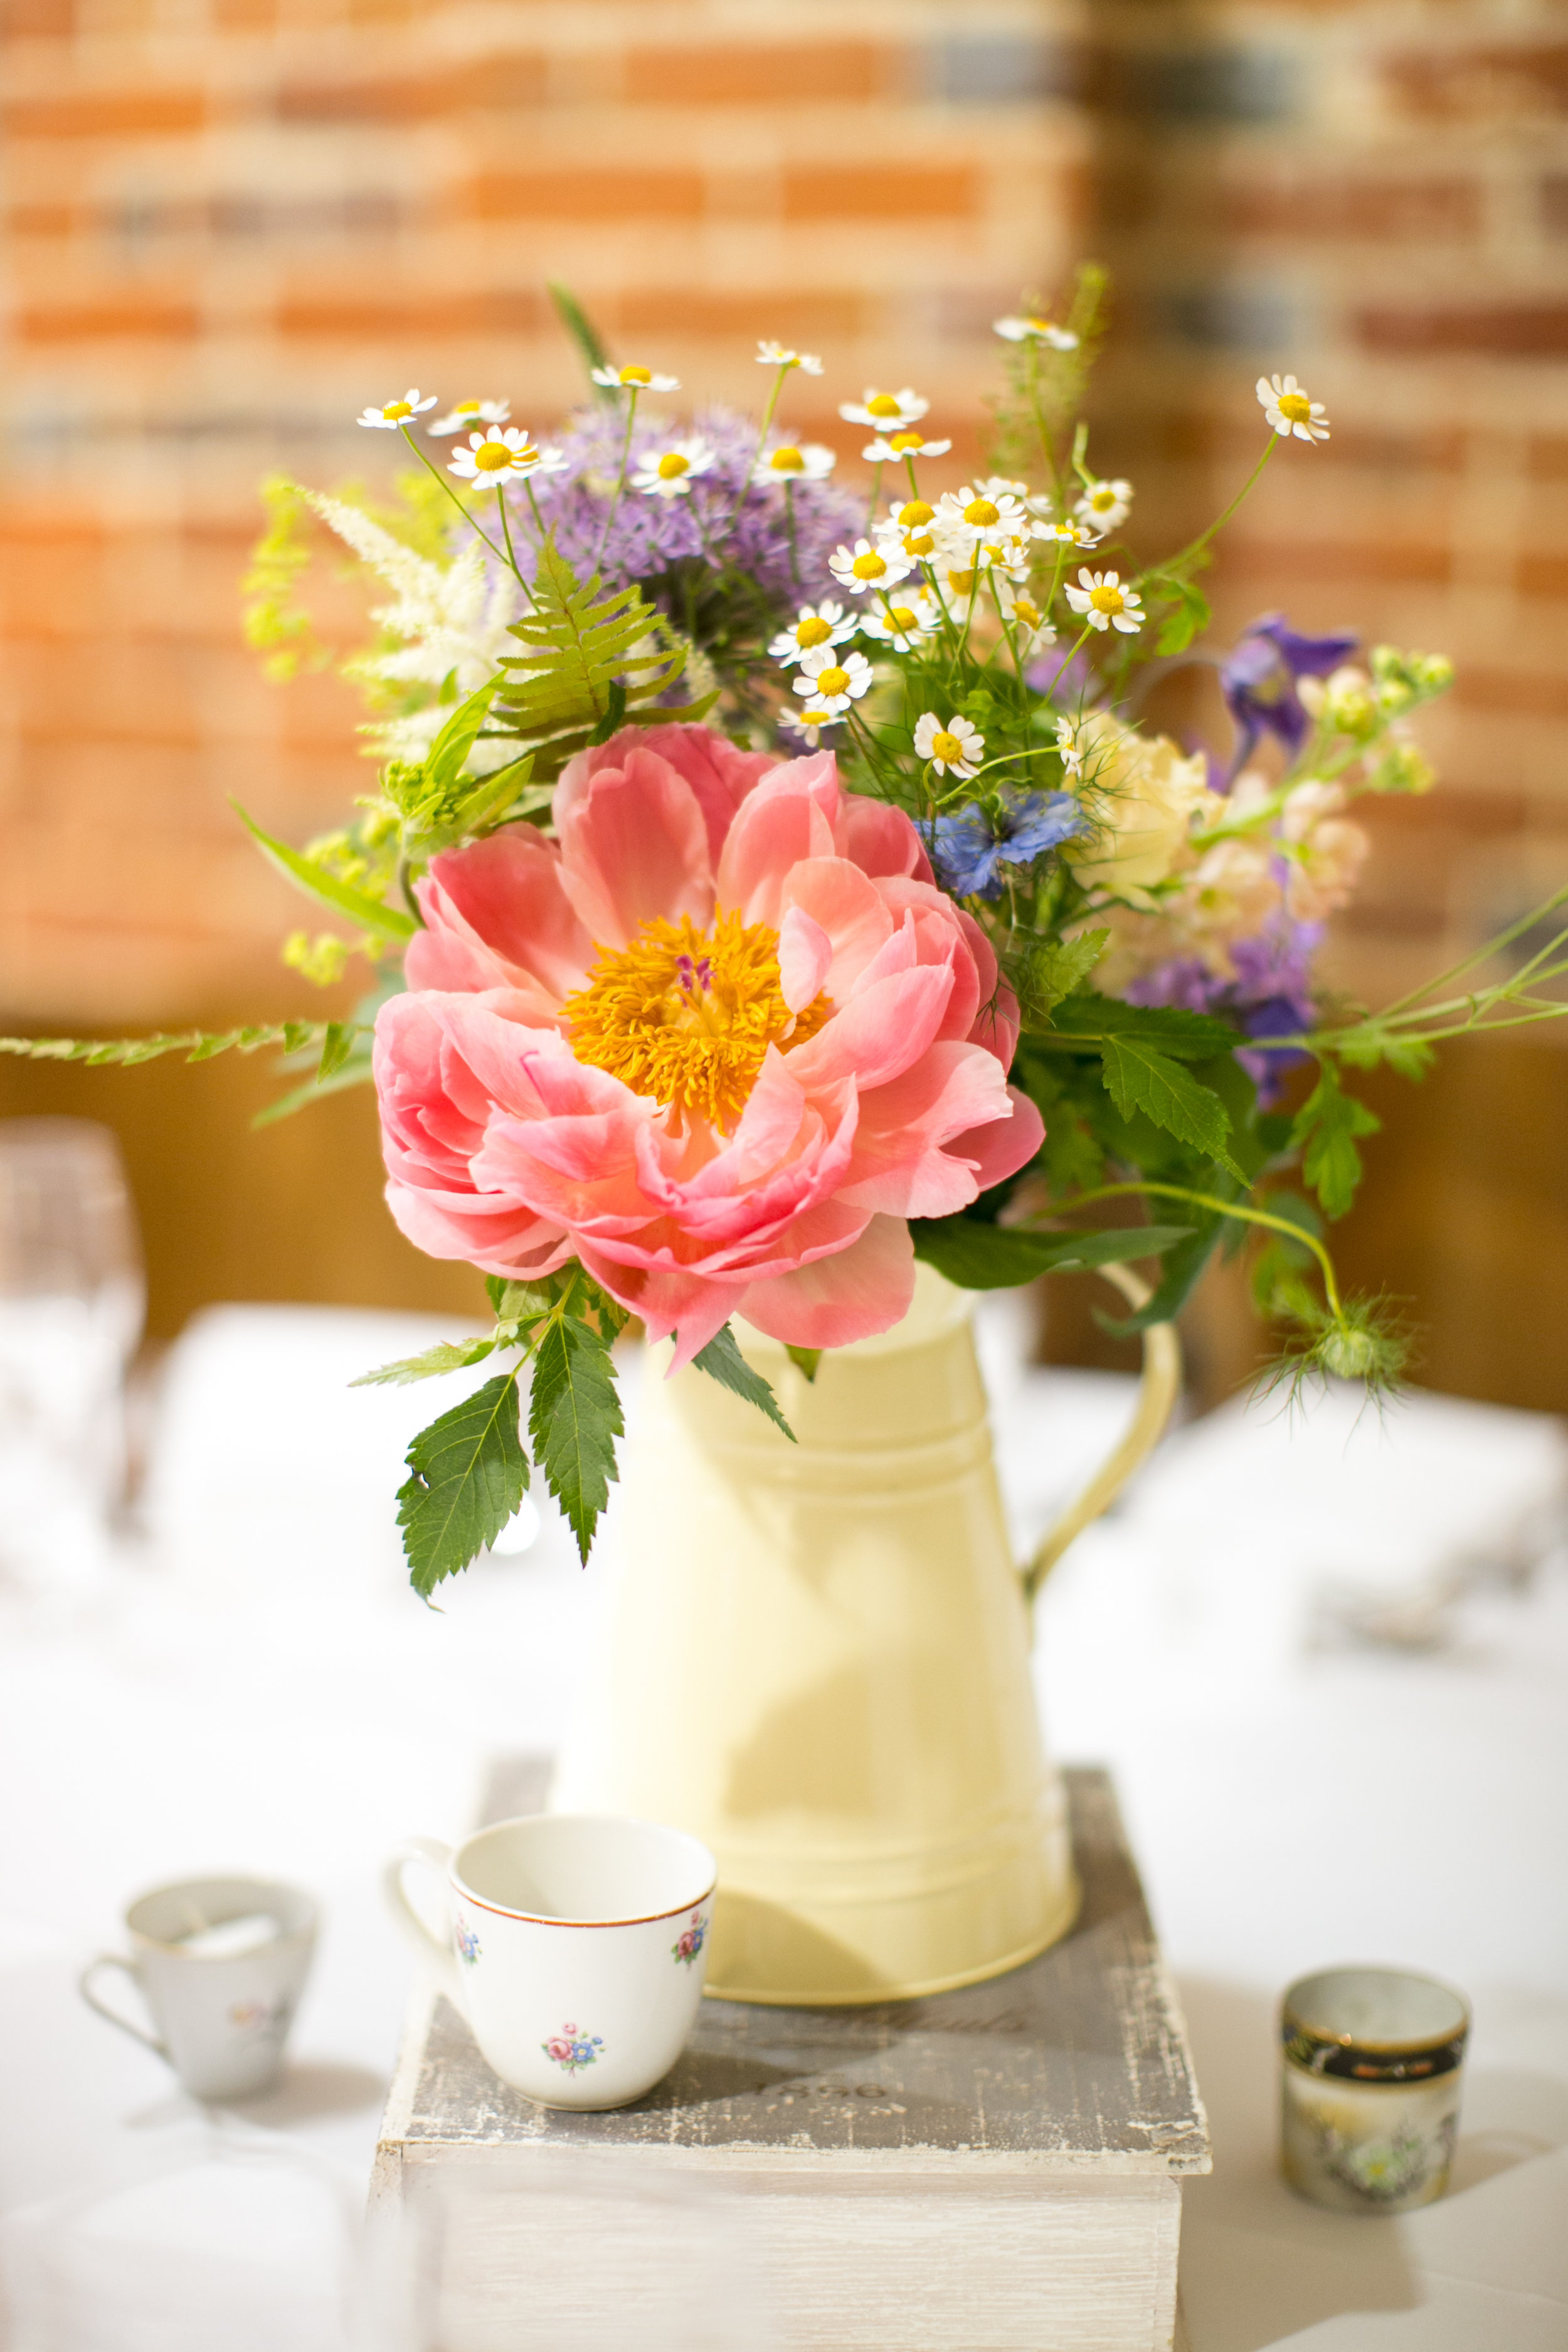 """It is not uncommon for me to make a miscellany of different arrangements for reception table centres. Using different vessels, I often elevate short vases and jugs by standing them on old books. I have a collection of little coffee cans which I use as tealight votives as shown here for this very simple relaxed styled wedding reception. I rarely make any table centre """"exactly"""" identical, I don't always have set lists of ingredients listing three of those and six of that but rather gather a selection of different elements for each table piece. For me, the varieties and and the colours will all come together on the day - it keeps the arrangements as you create them constantly fresh and exciting - (even when there are twenty or more to make)!"""